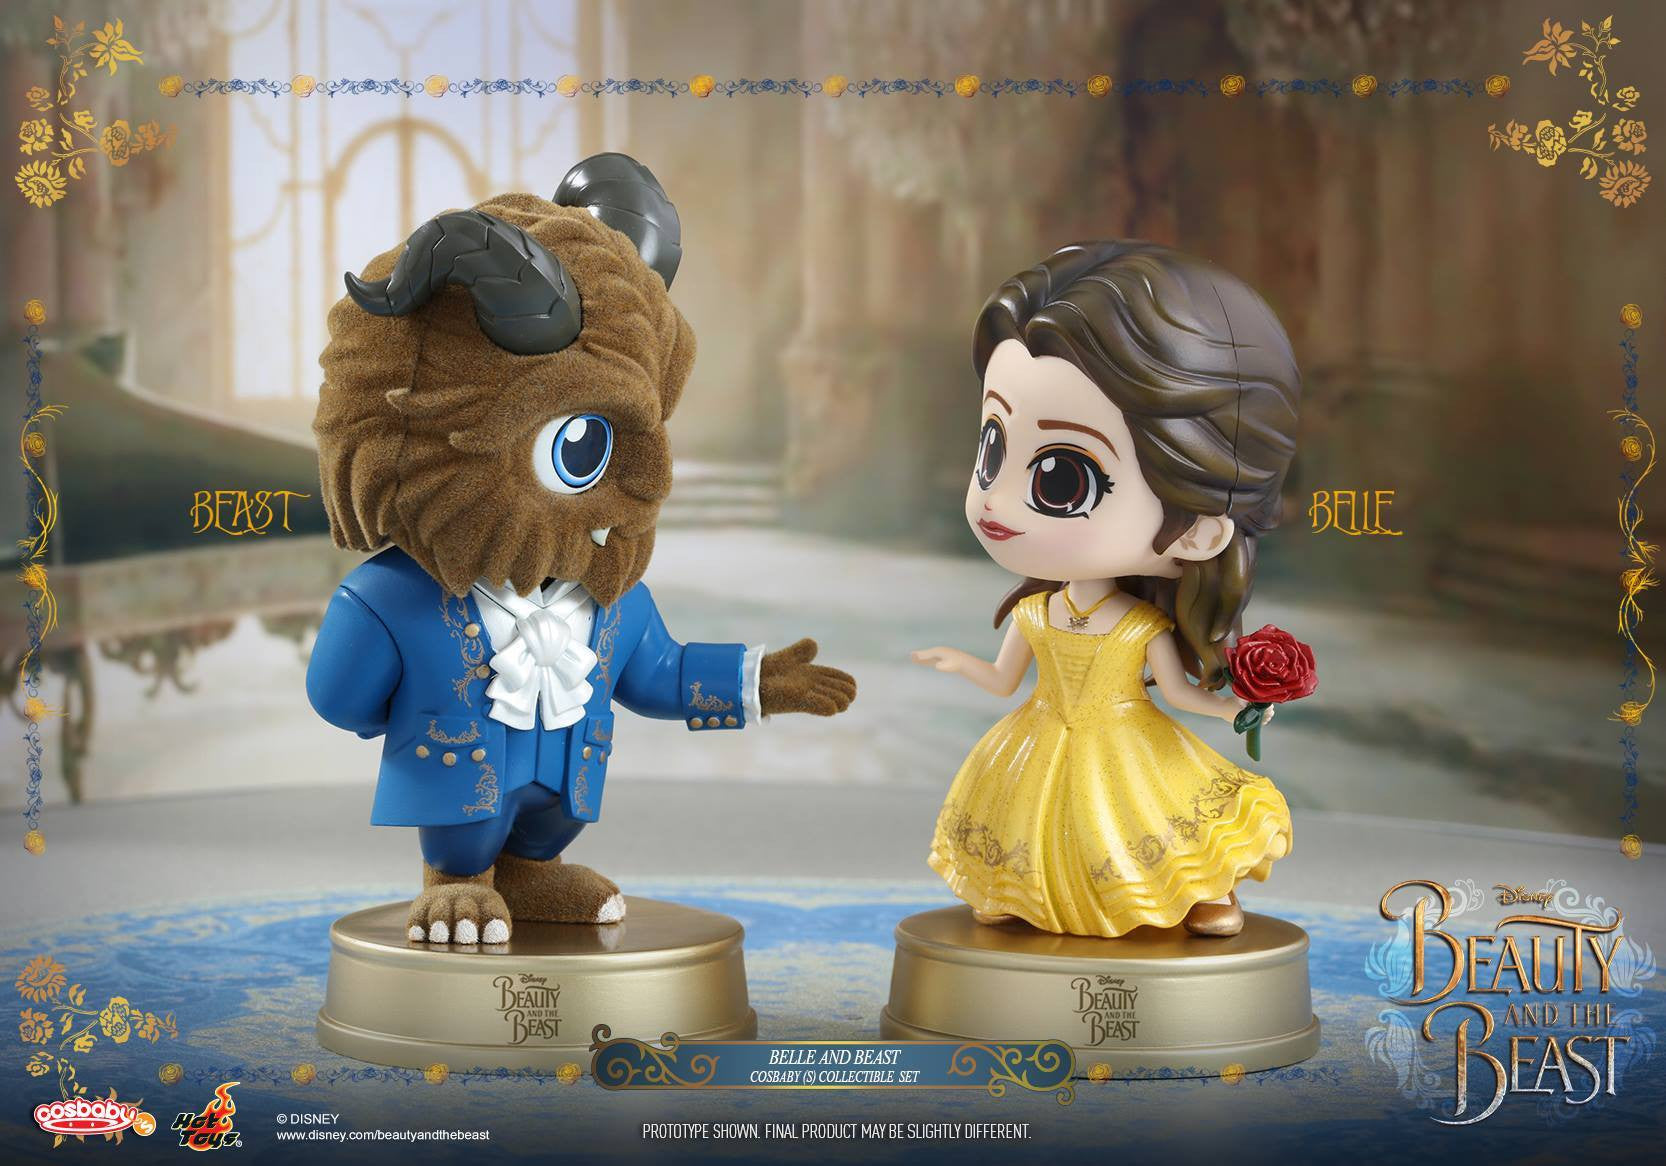 Hot Toys - COSB352 - Beauty and the Beast - Belle and Beast Cosbaby Set